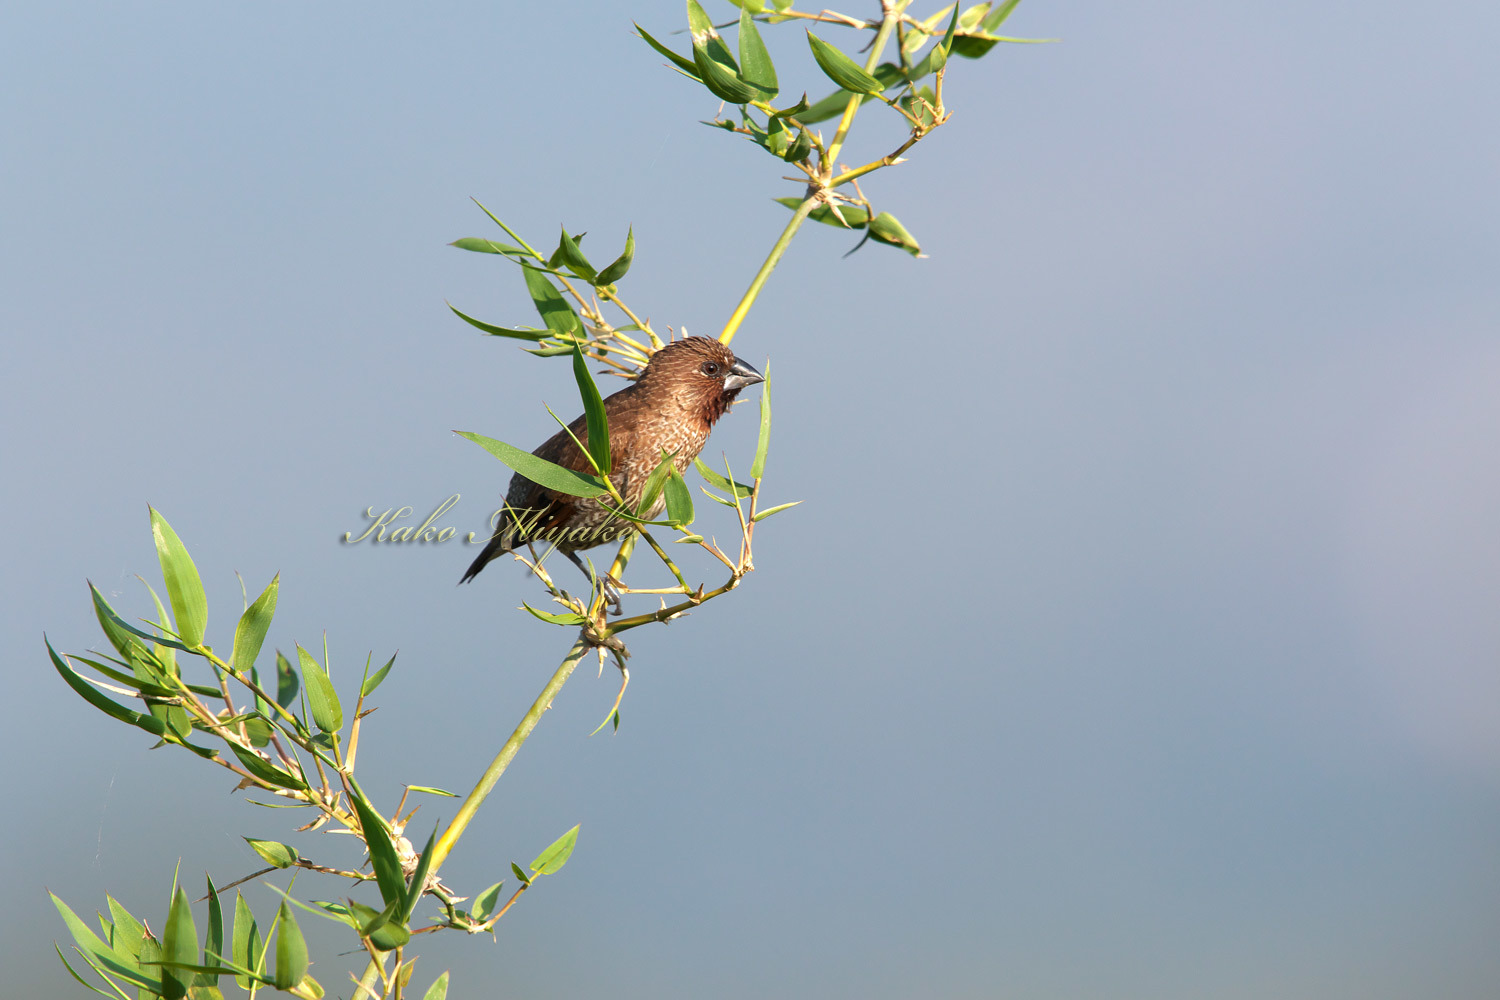 シマキンパラ Scary-breasted munia_d0013455_19385790.jpg